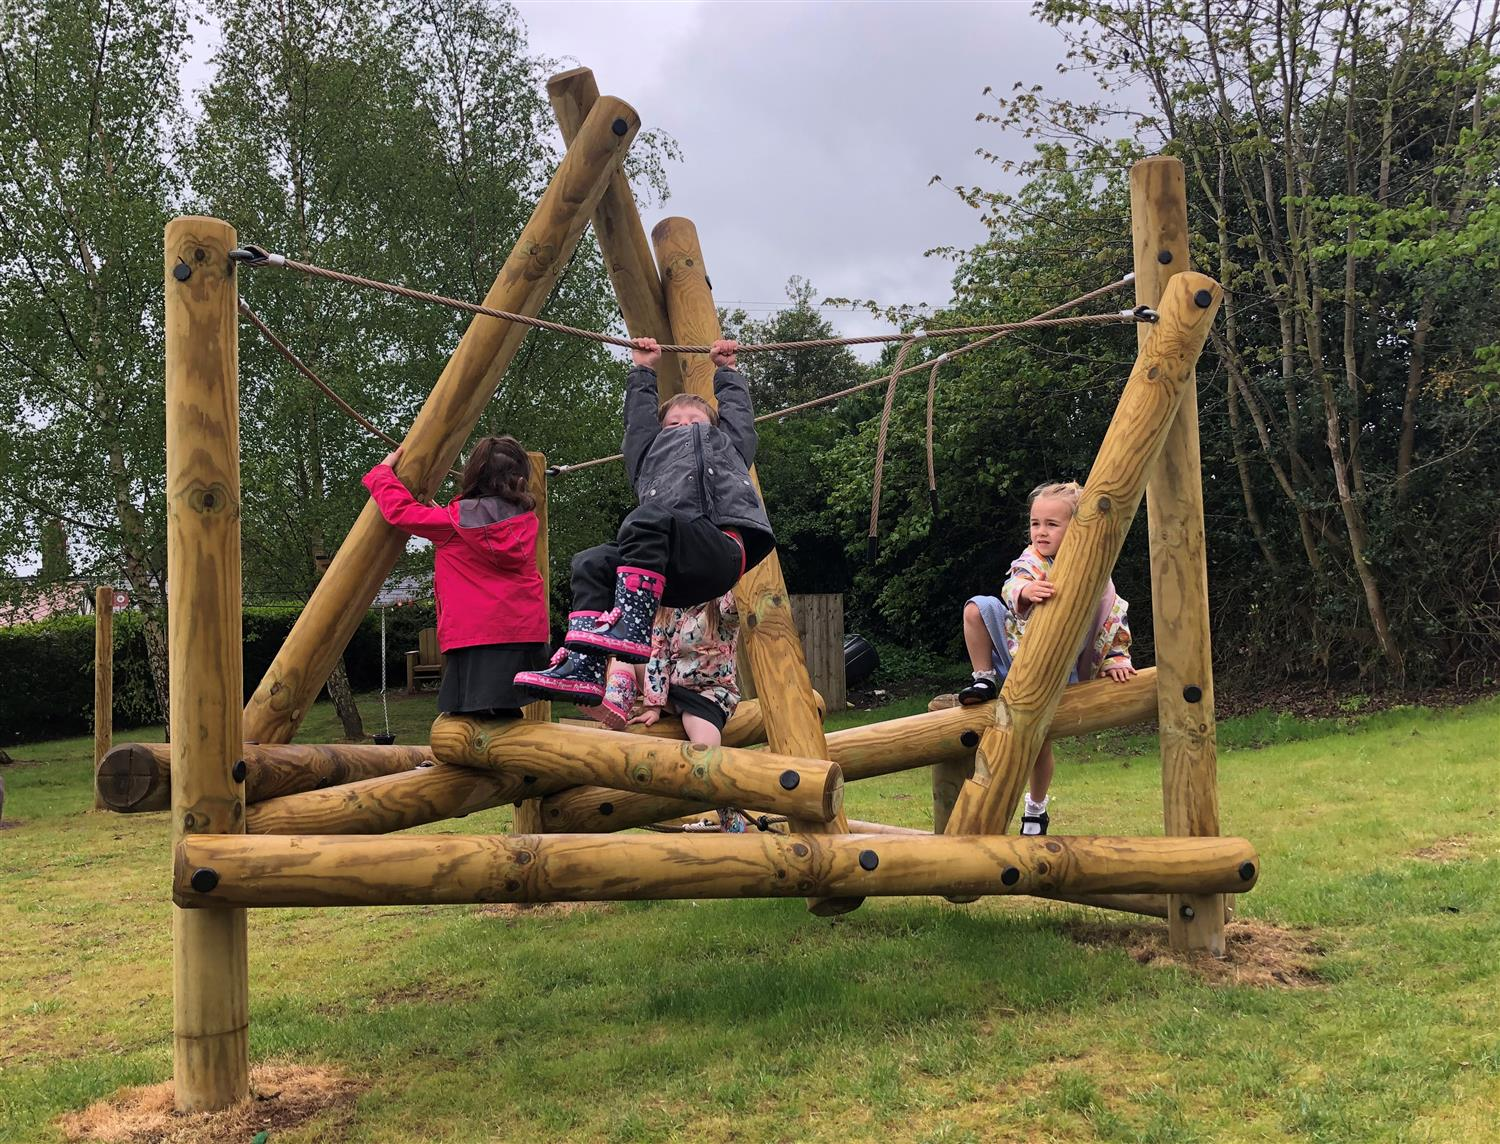 Children playing on a school climbing frame in the rain